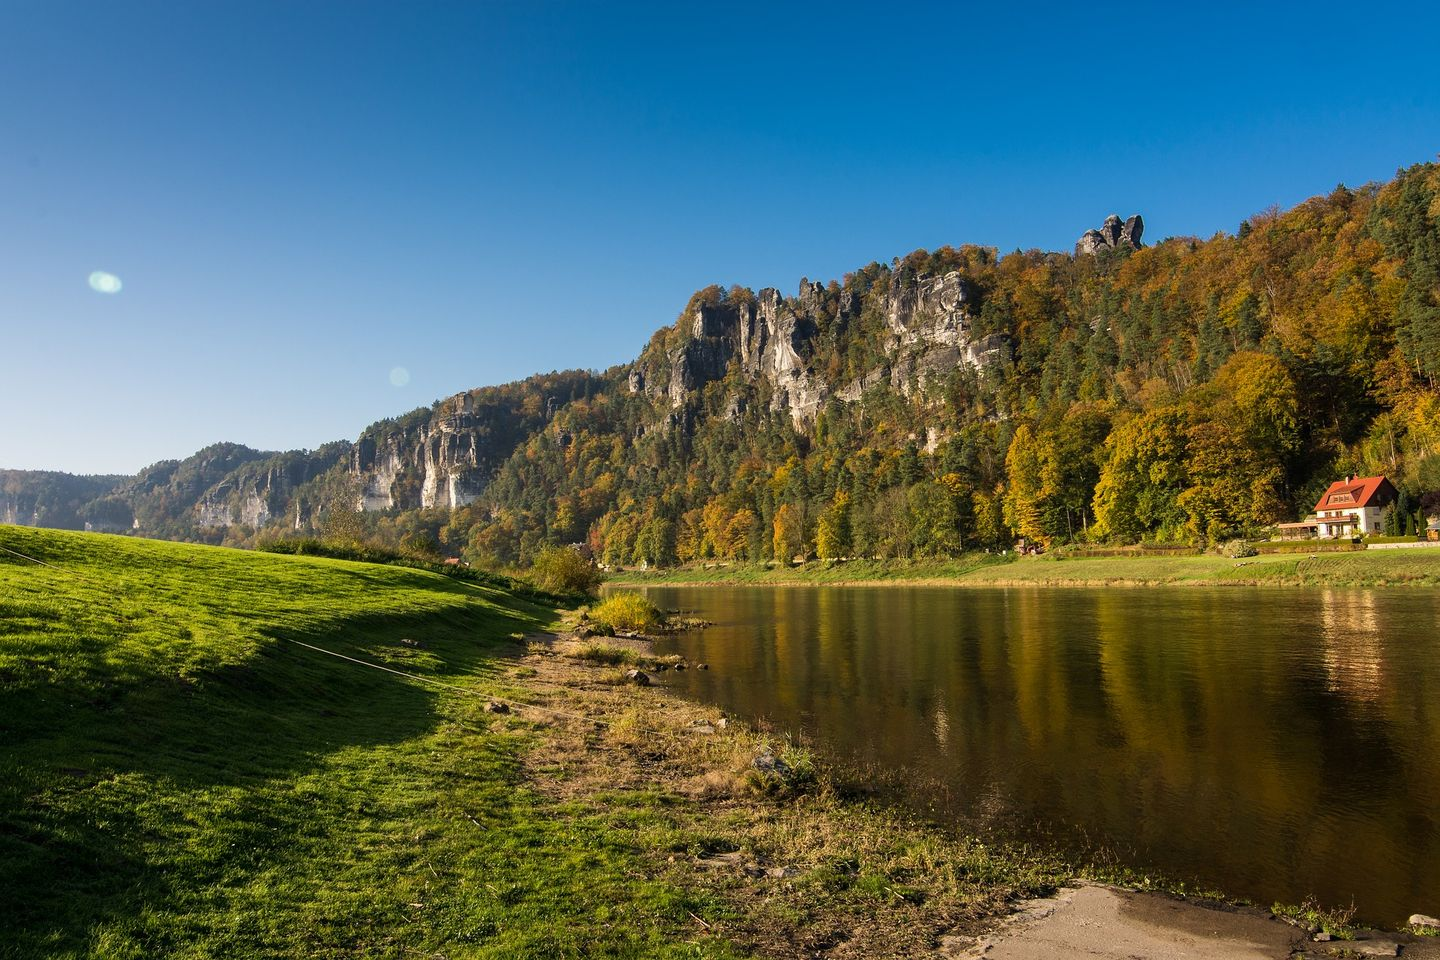 The Elbe river